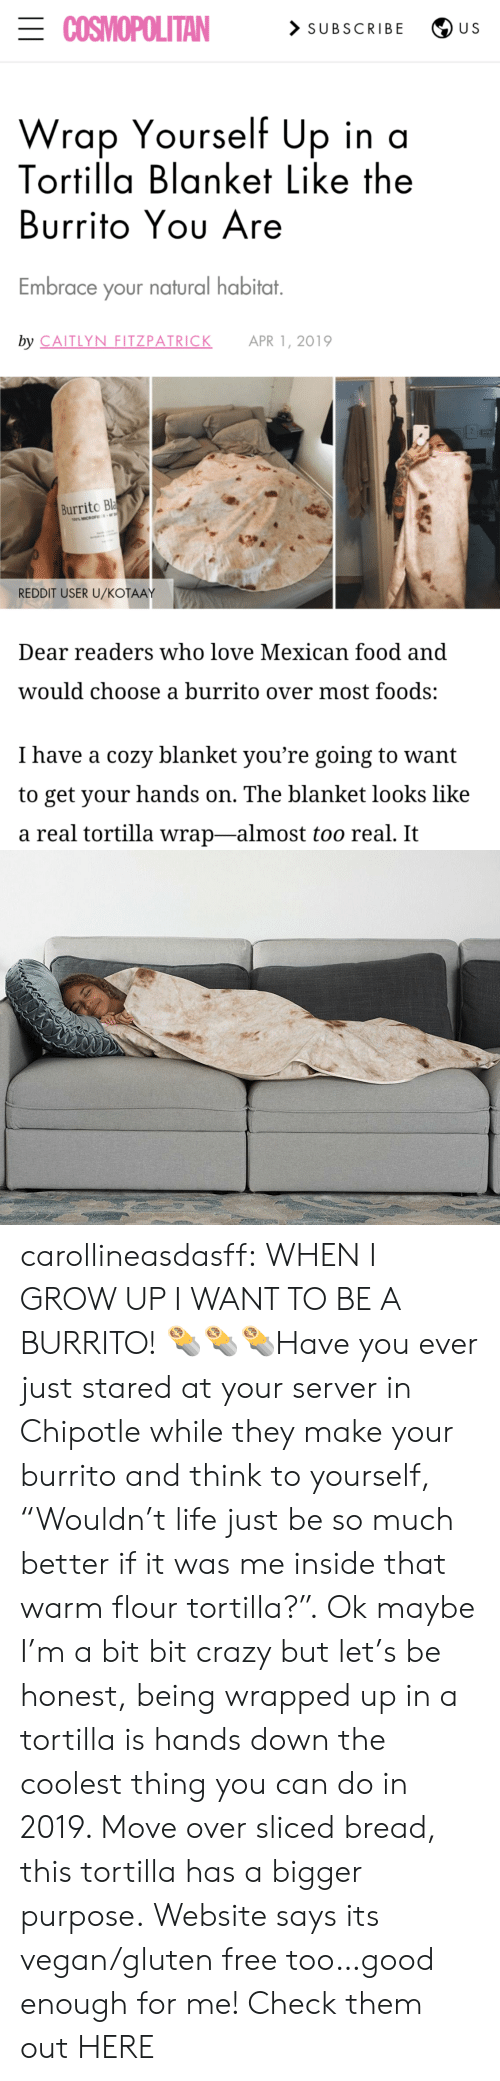 "burrito: ECOSMOPOLITAN  > SUBSCRIBE  U S  Wrap Yourself Up in a  Tortilla Blanket Like the  Burrito Yου Are  Embrace your natural habitat.  by CAITLYN FITZPATRICK  APR 1, 2019  Burrito Bla  100% MICROFE  REDDIT USER U/KOŤAAY  Dear readers who love Mexican food and  would choose a burrito over most foods:  I have a cozy blanket you're going to want  to get your hands on. The blanket looks like  a real tortilla wrap-almost too real. It carollineasdasff:  WHEN I GROW UP I WANT TO BE A BURRITO! 🌯🌯🌯Have you ever just stared at your server in Chipotle while they make your burrito and think to yourself, ""Wouldn't life just be so much better if it was me inside that warm flour tortilla?"". Ok maybe I'm a bit bit crazy but let's be honest, being wrapped up in a tortilla is hands down the coolest thing you can do in 2019. Move over sliced bread, this tortilla has a bigger purpose. Website says its vegan/gluten free too…good enough for me! Check them out HERE"